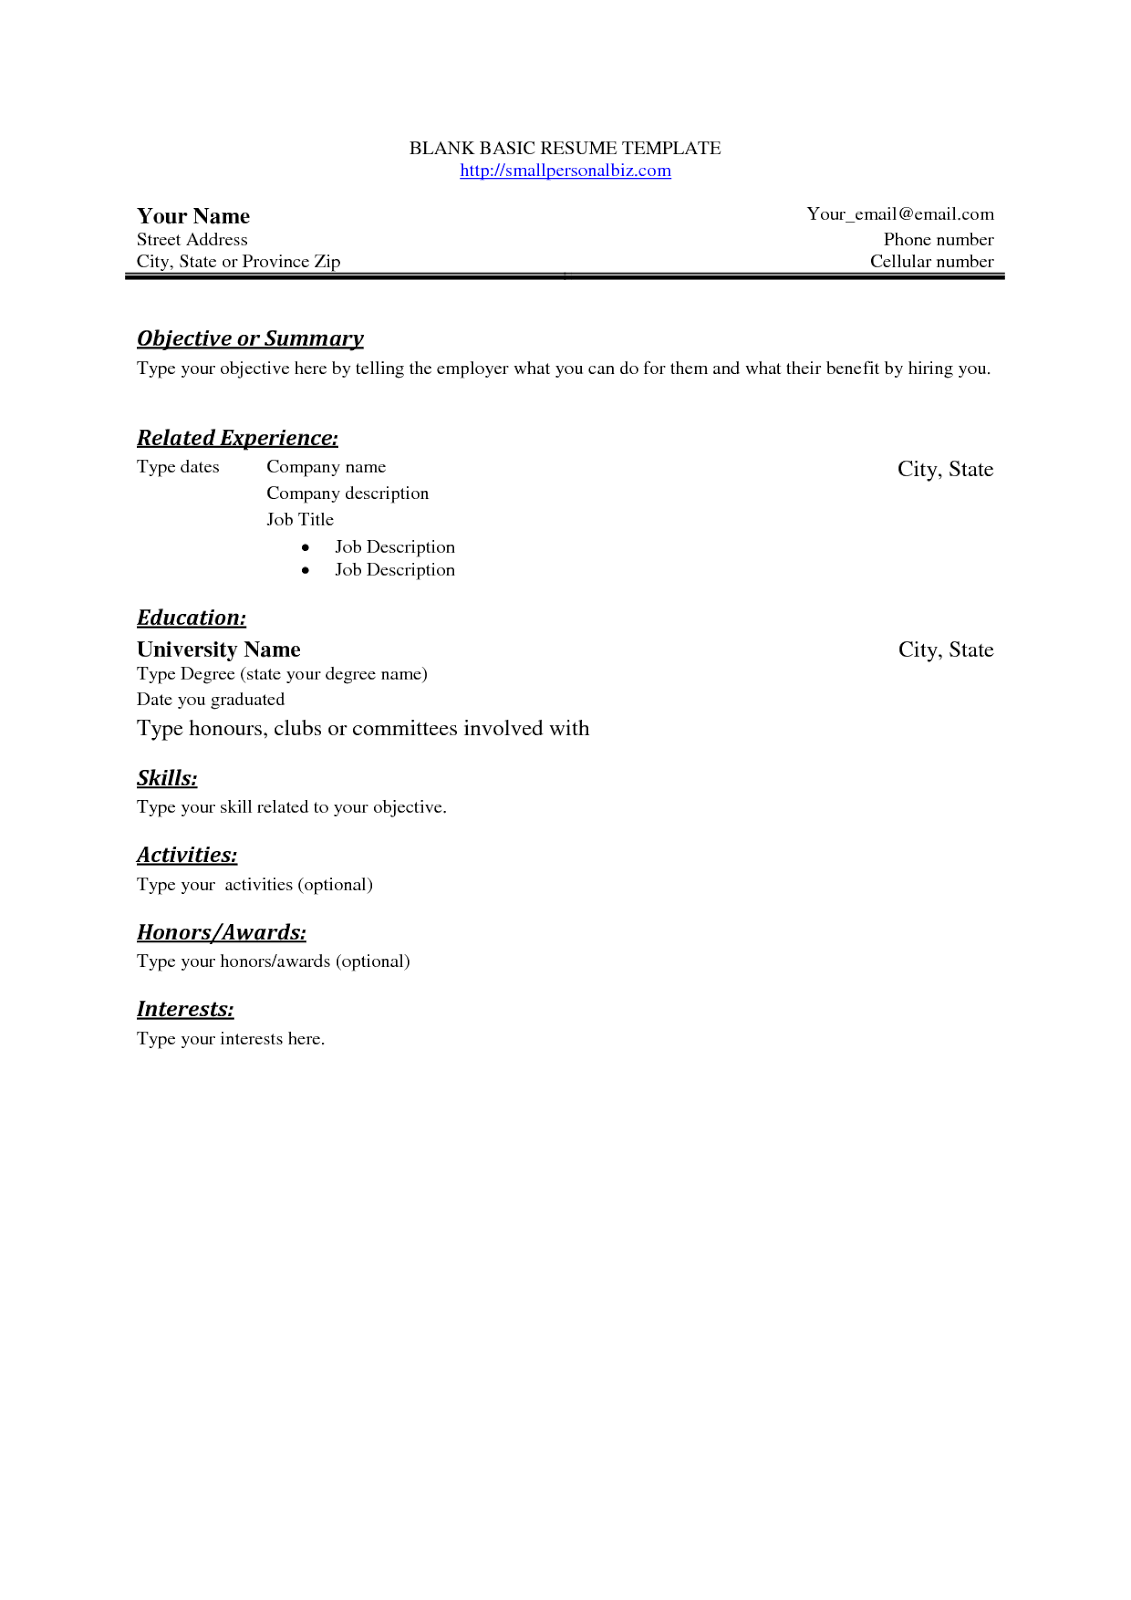 Printable resume outlines – Printable Resume Template